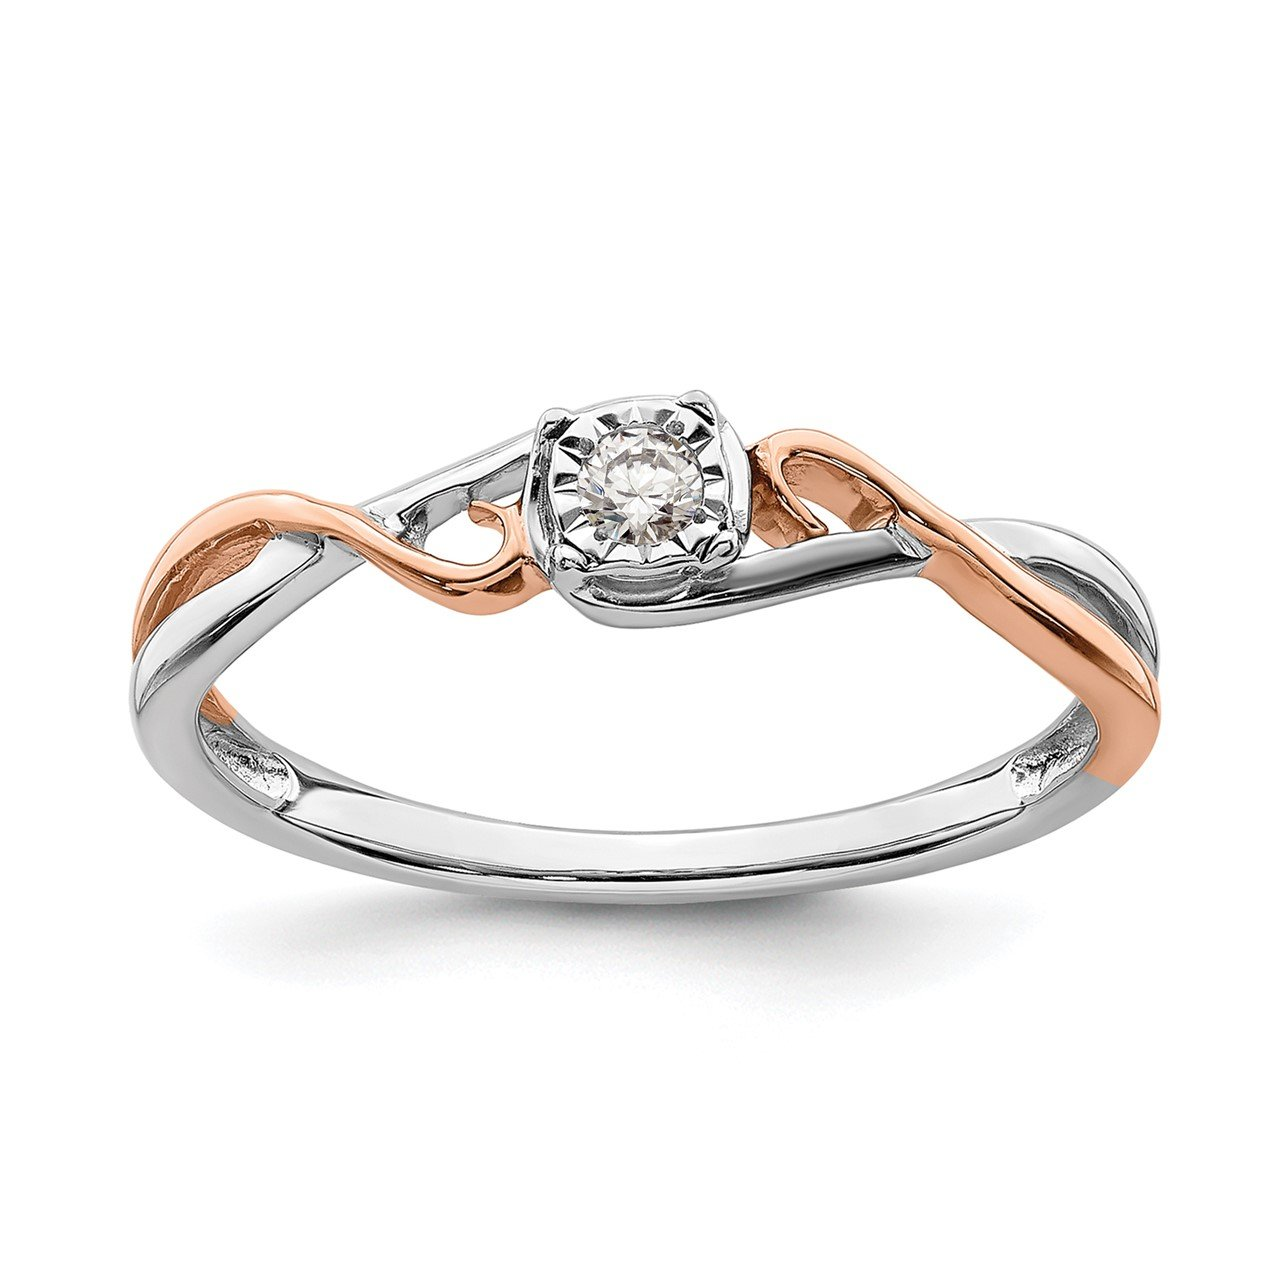 14k White and Rose Gold .05 ctw. Diamond Promise Ring